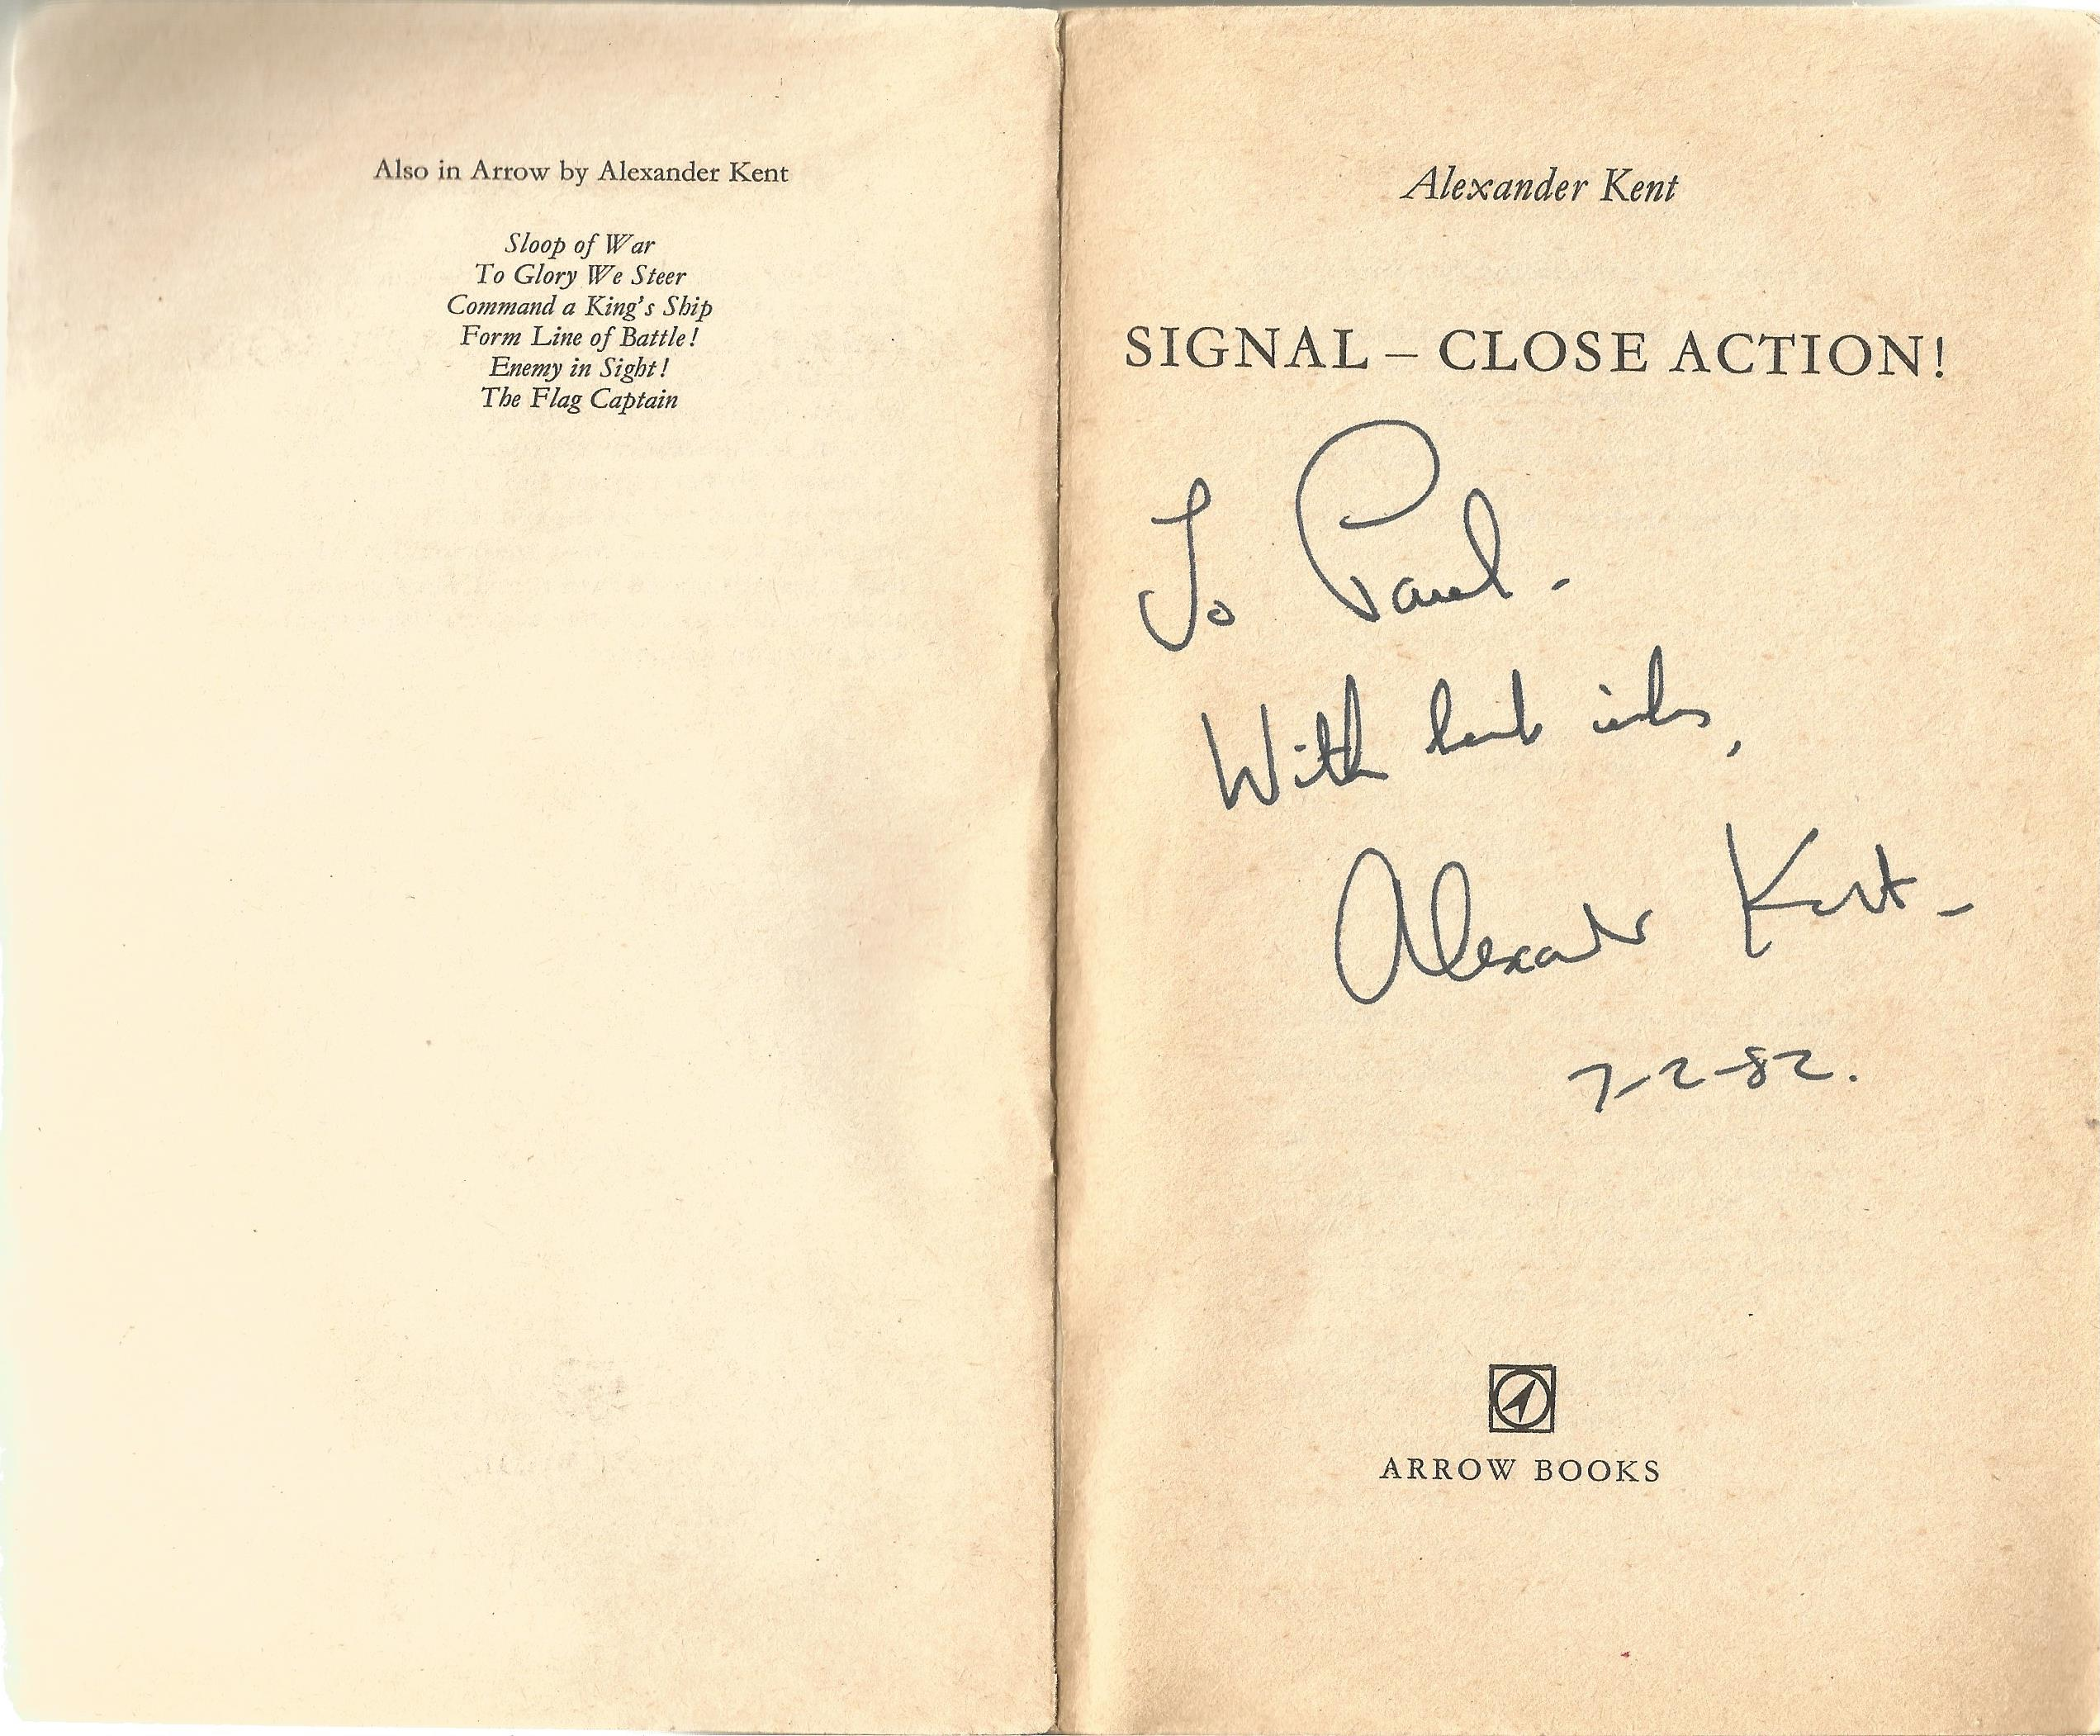 Alexander Kent Paperback Book Signal Close Action! signed by the Author on the Title Page some minor - Image 2 of 2